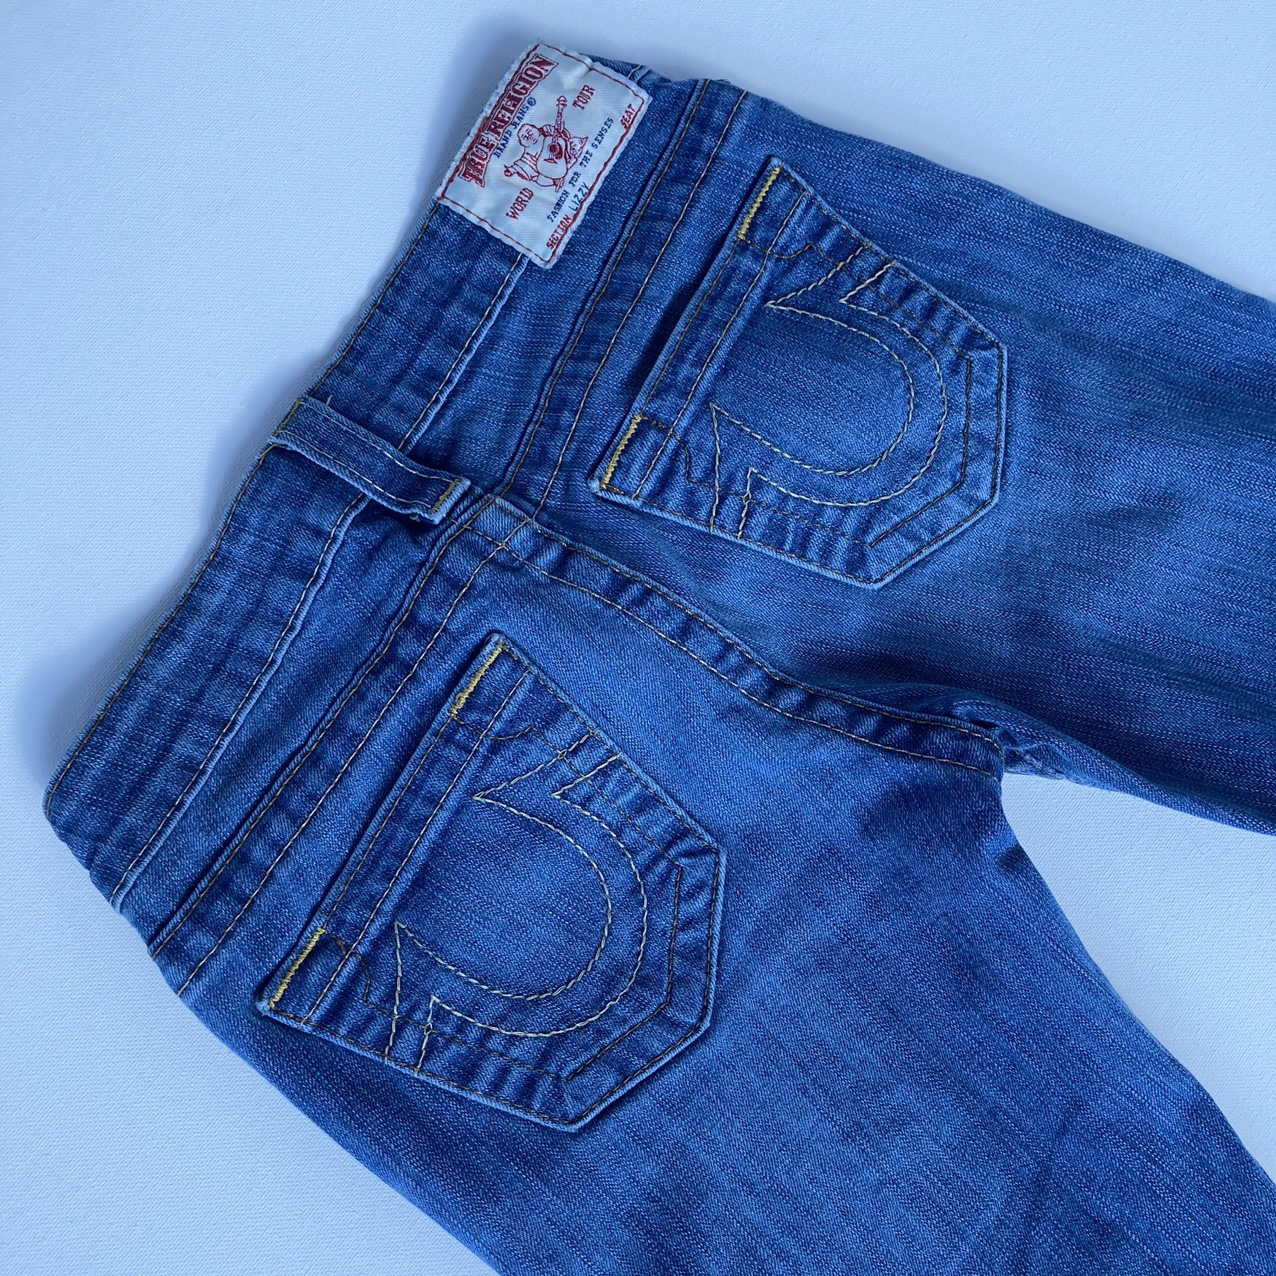 Product Image 1 - True Religion Blue Jeans  FREE SHIPPING